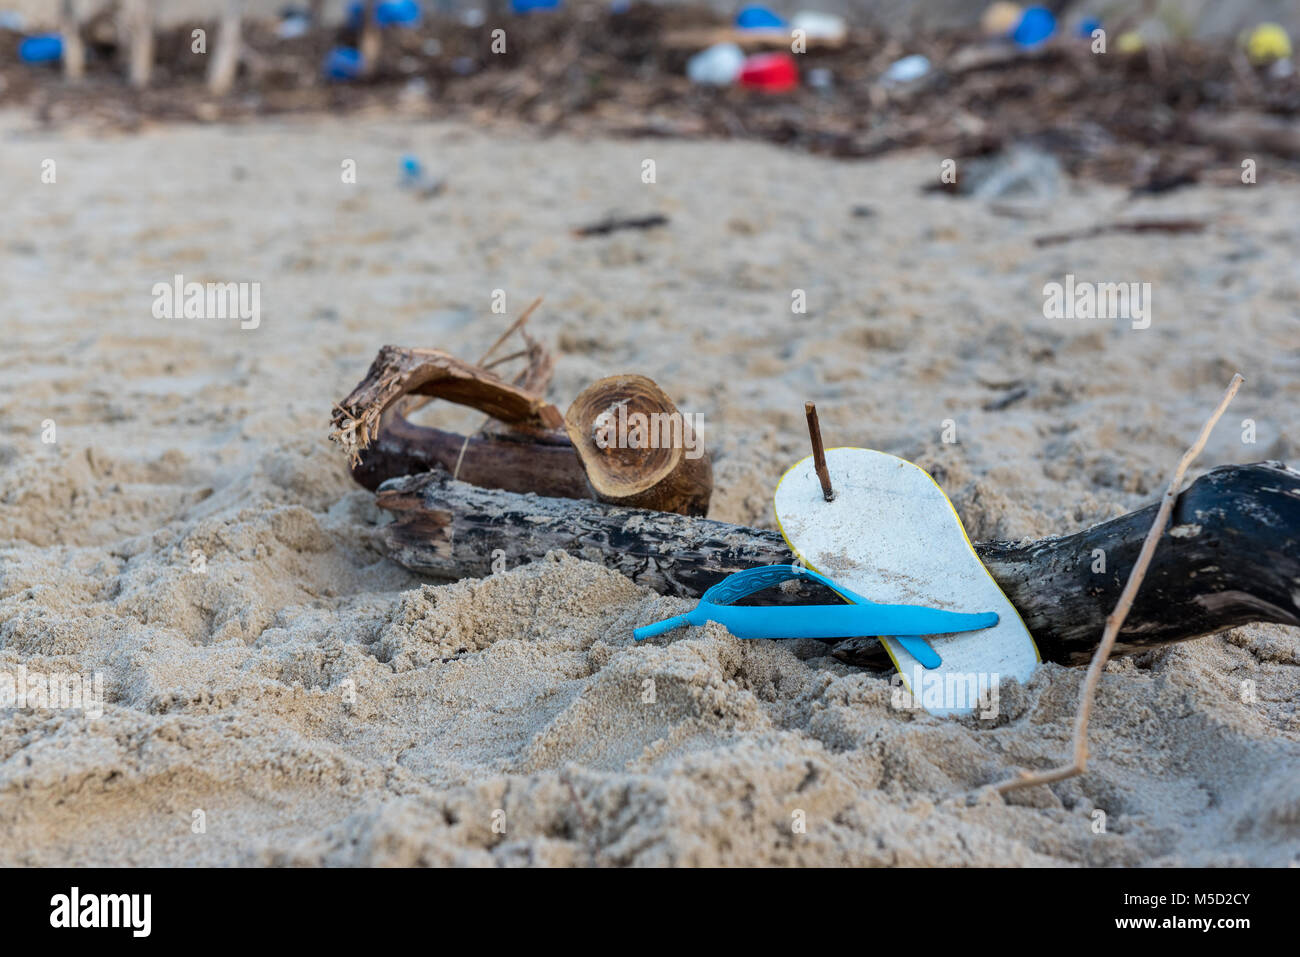 Rubbish and domestic waste polluting the beach Stock Photo